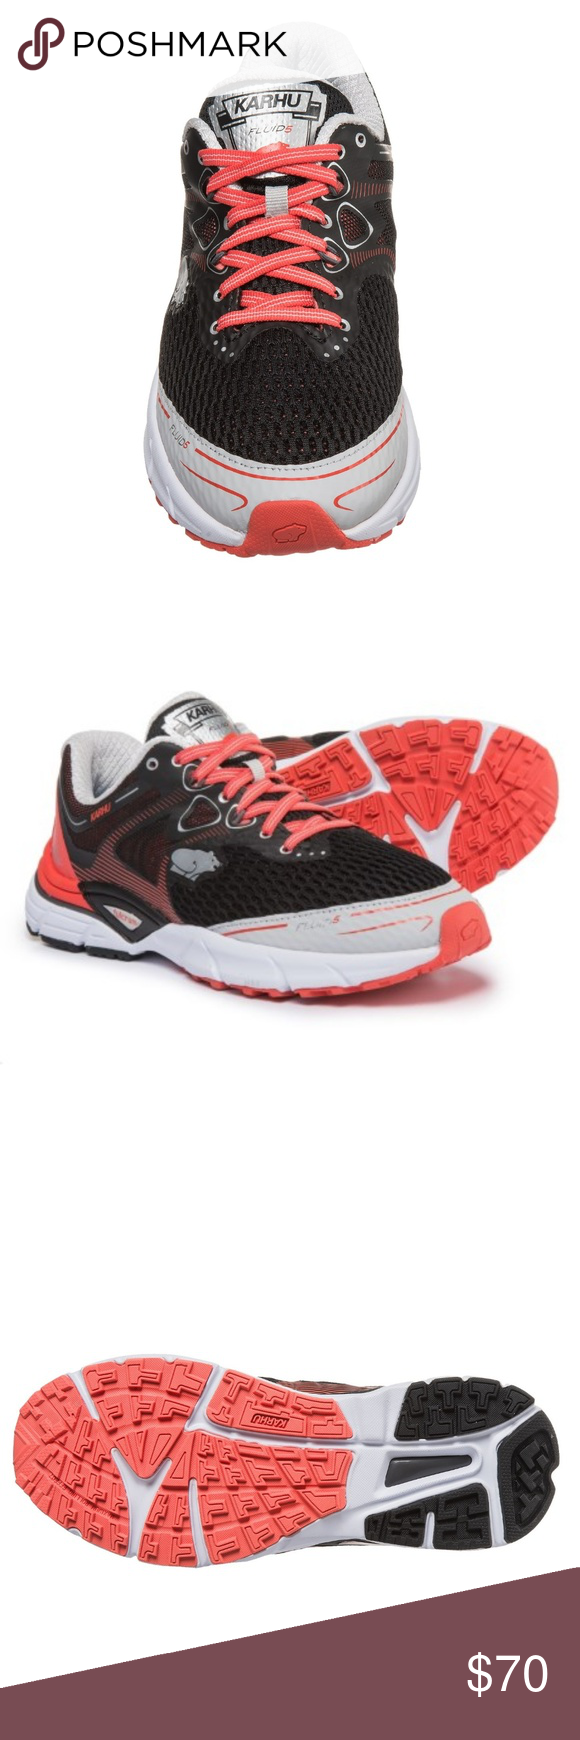 10dde6dfead416 Karhu Women Fluid 5 MRE Running Shoes Three-phase Fulcrum technology  transitions heel pressure into